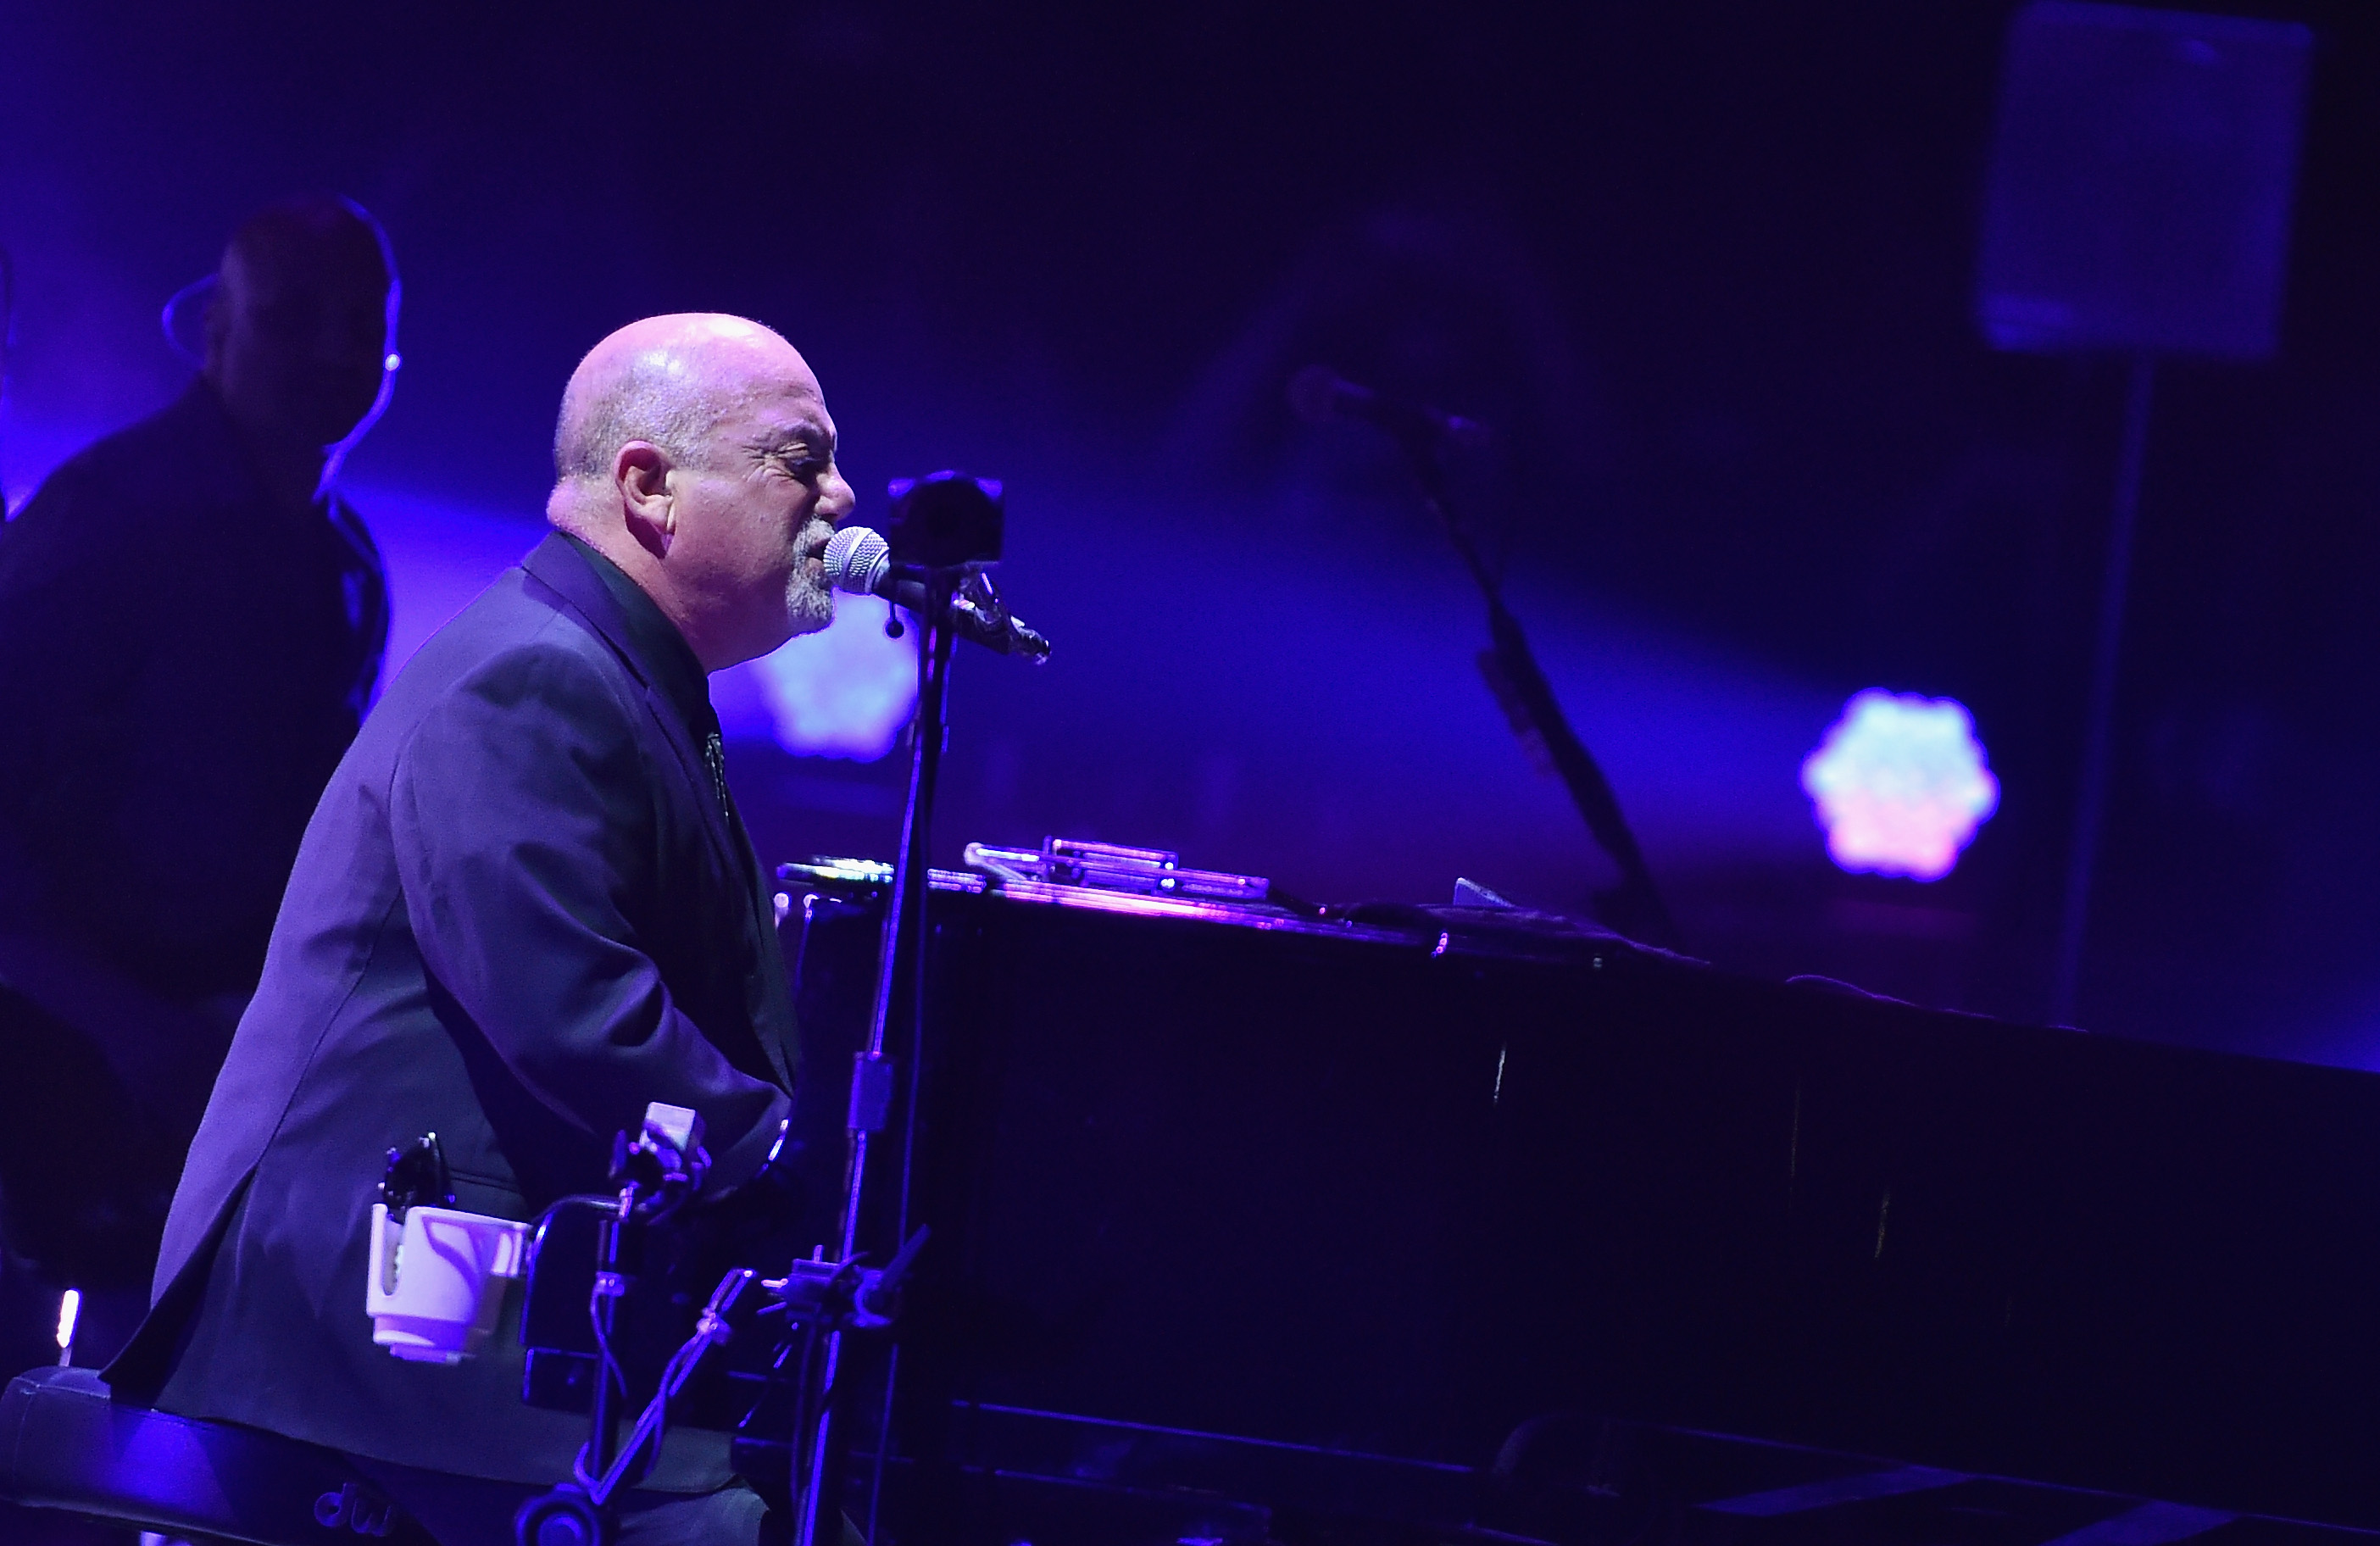 Billy Joel performs in concert at Madison Square Garden on May 27 in New York City.